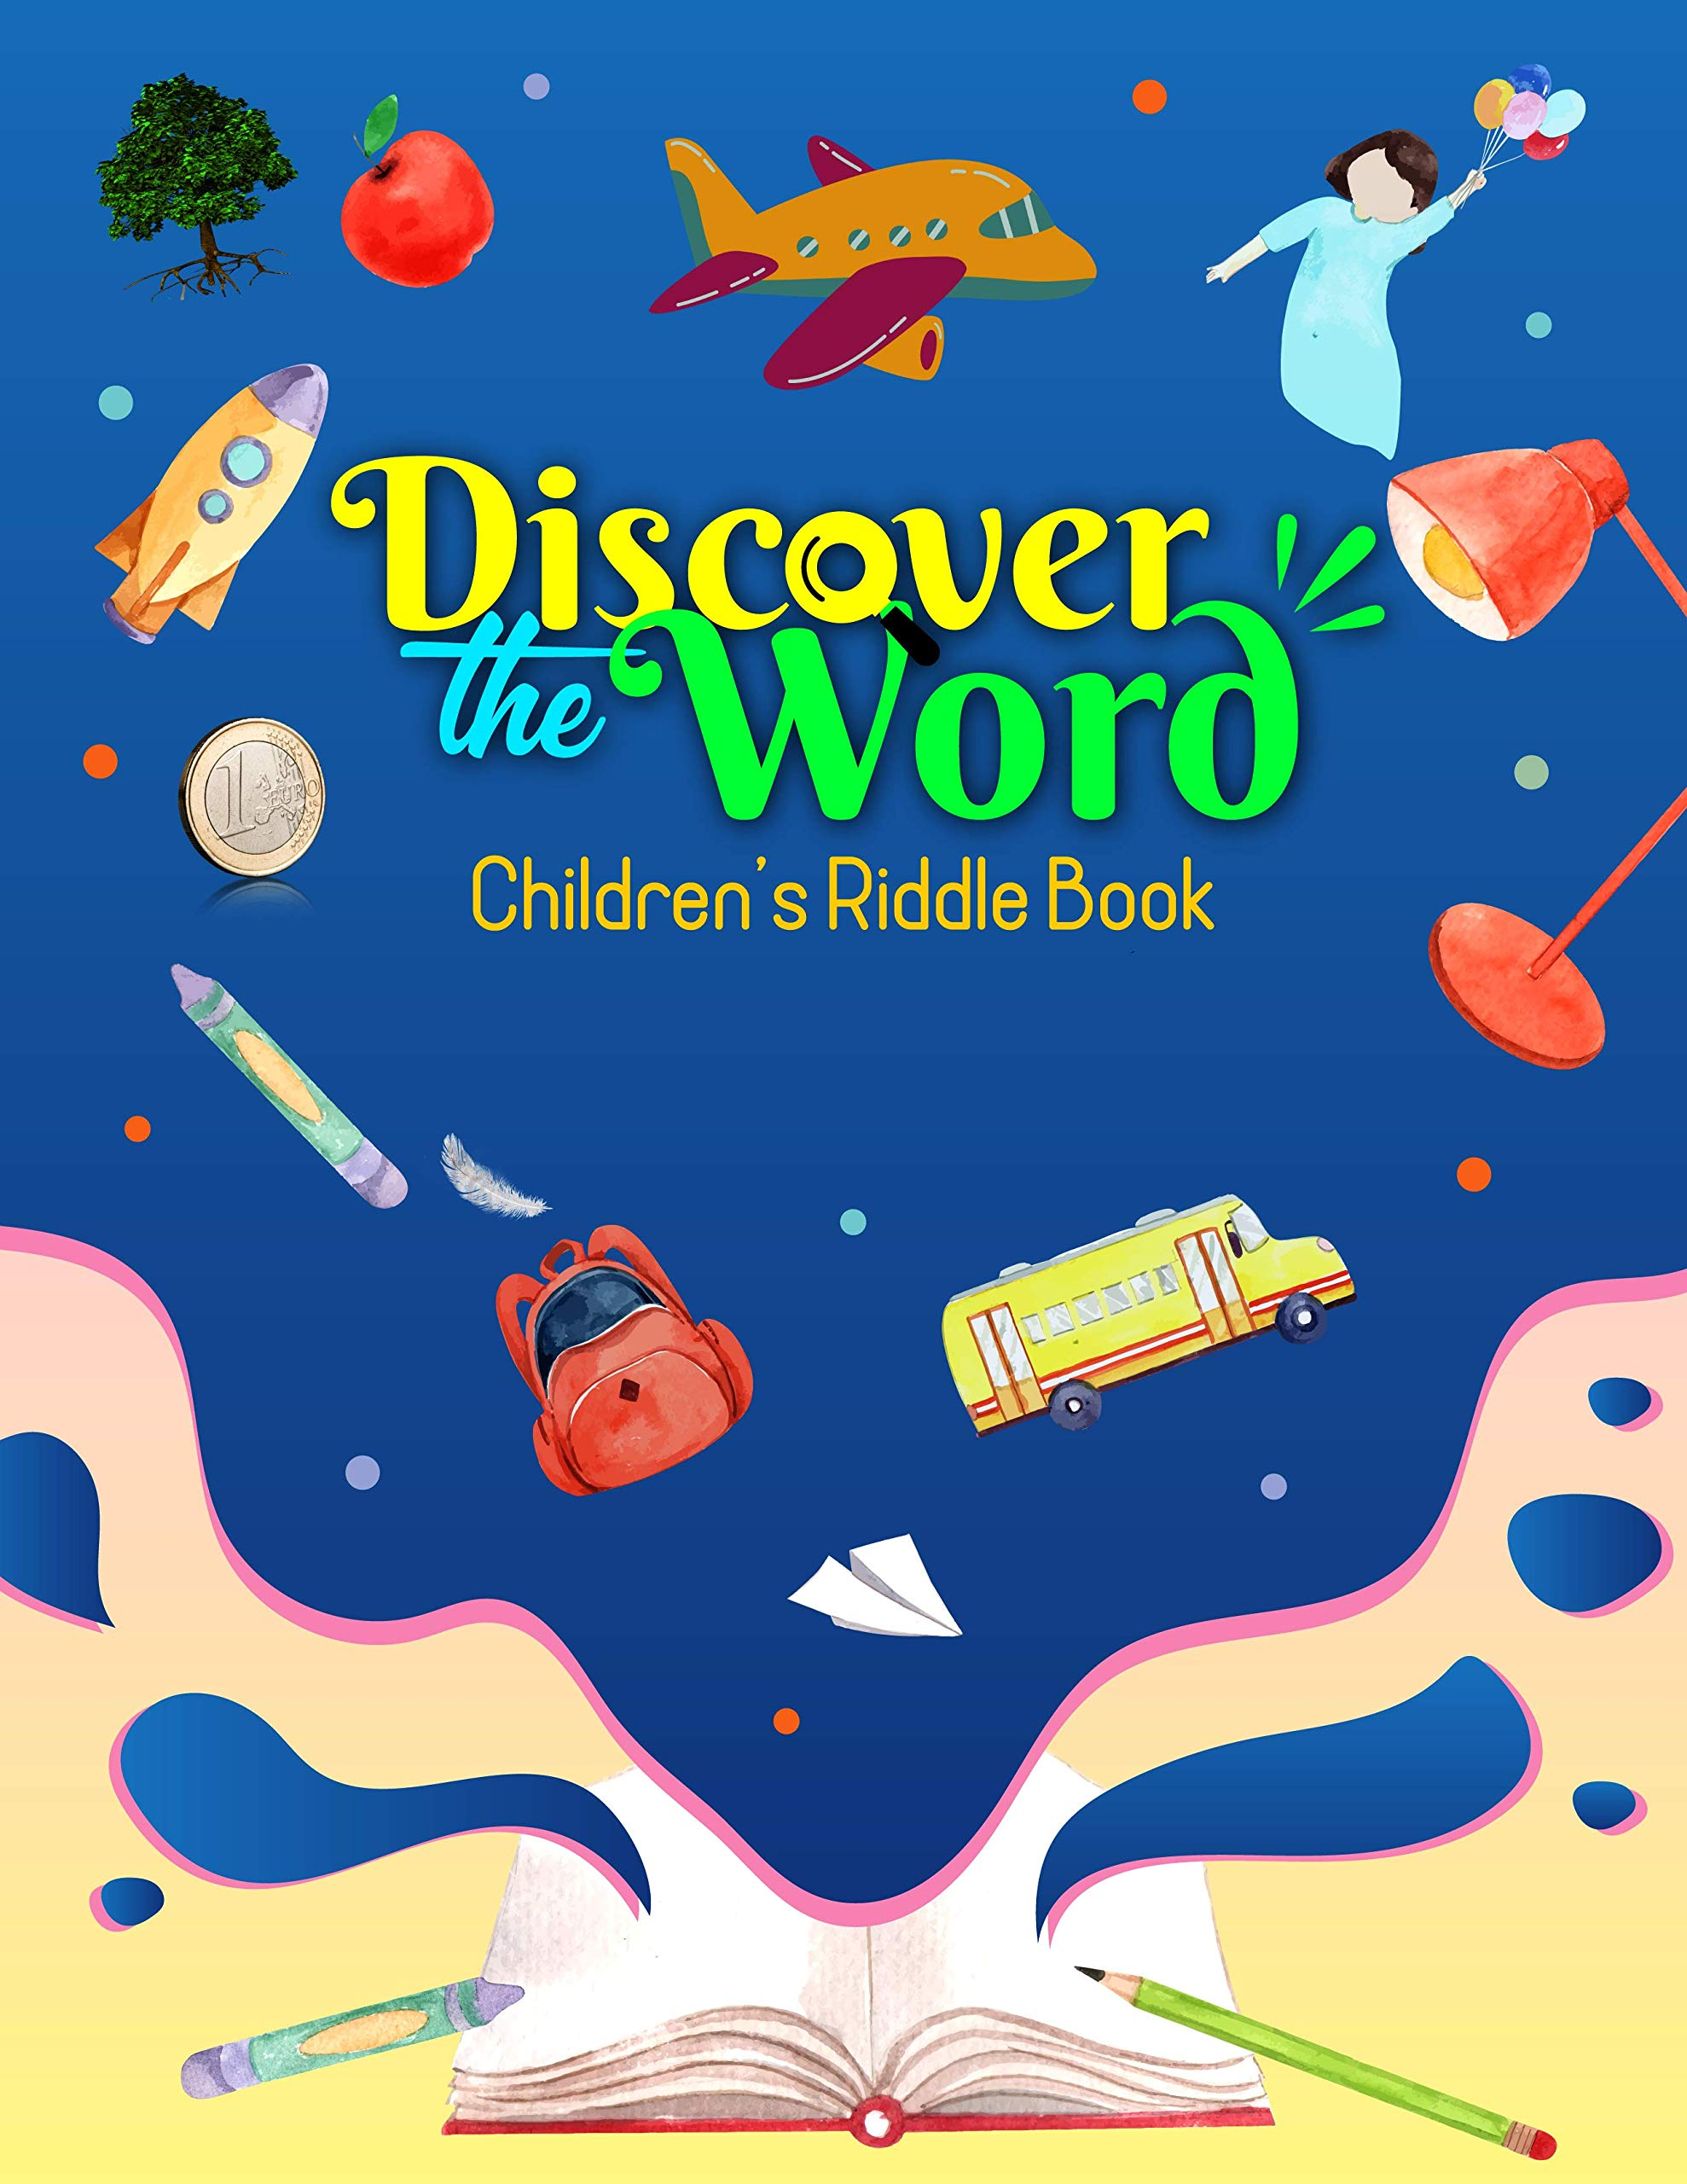 Discover the Word Children's Riddle Book: Children's 50 Educational Riddles; Brainstorm, have fun & learn more! Grows logical & analytical ability, Builds ... Reading ability; For Ages 5 to 11